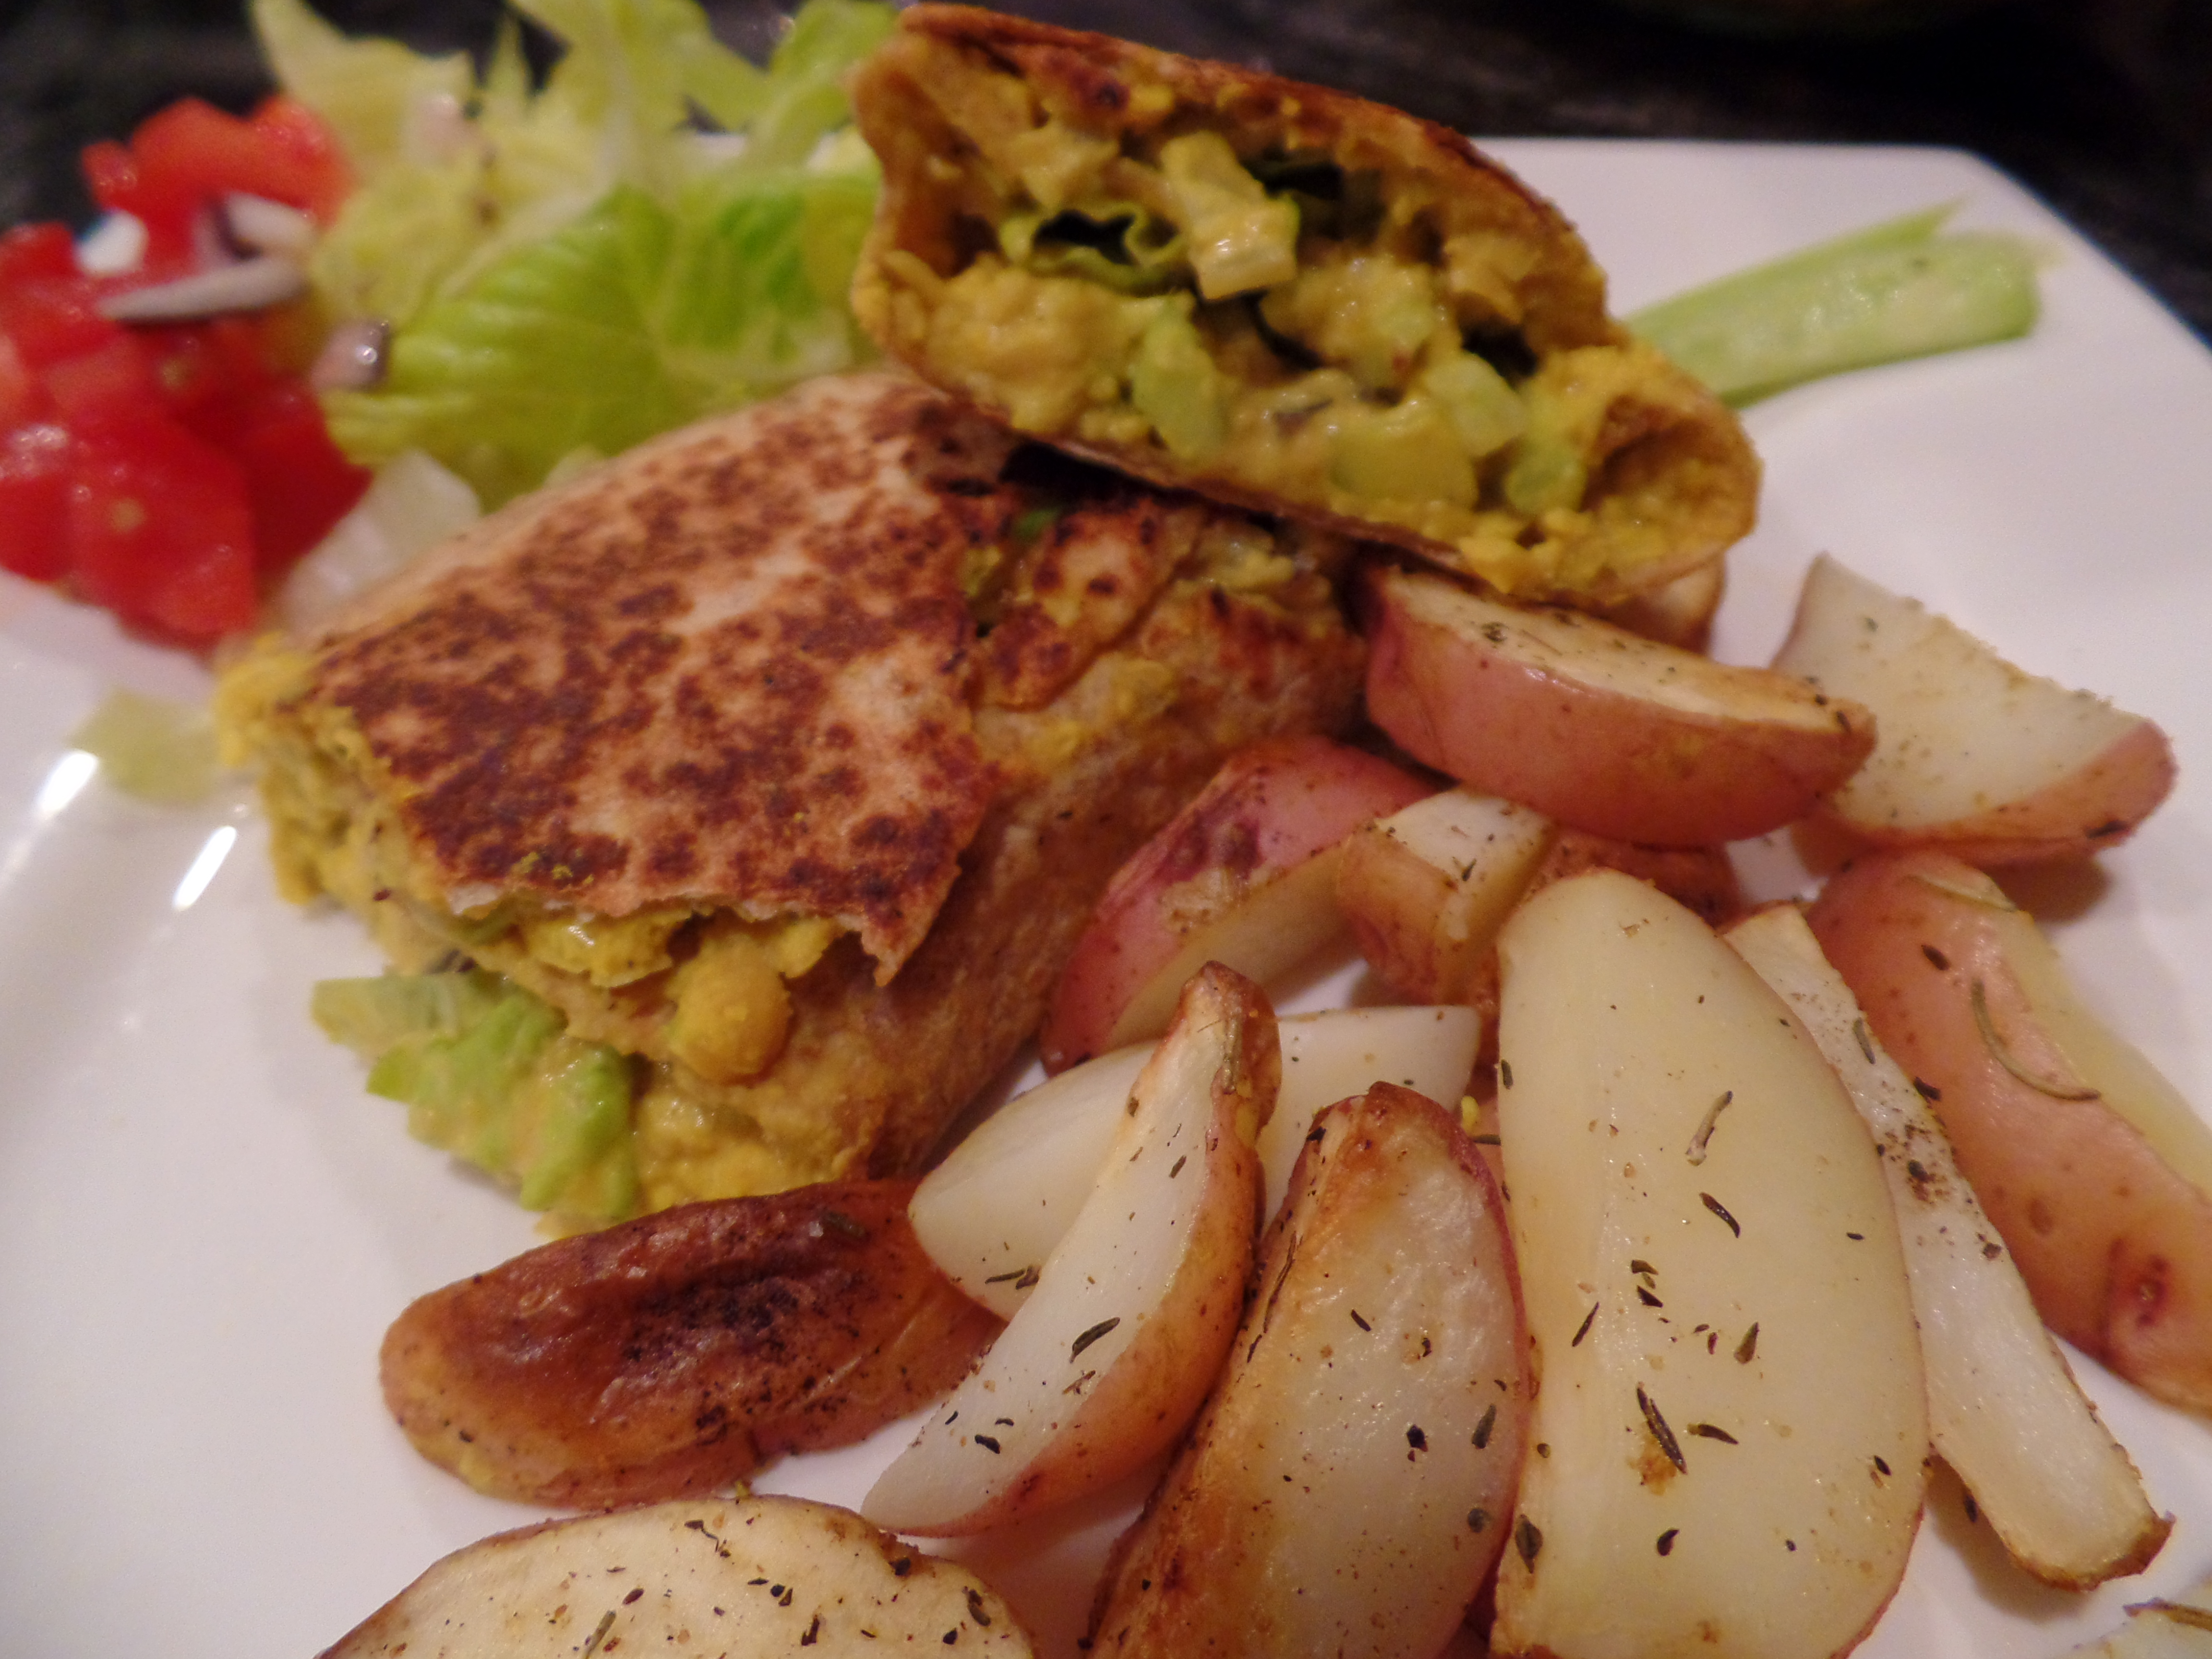 The Lifestyle Reporter Vegan Chickpea Shawarma with baked potato slices